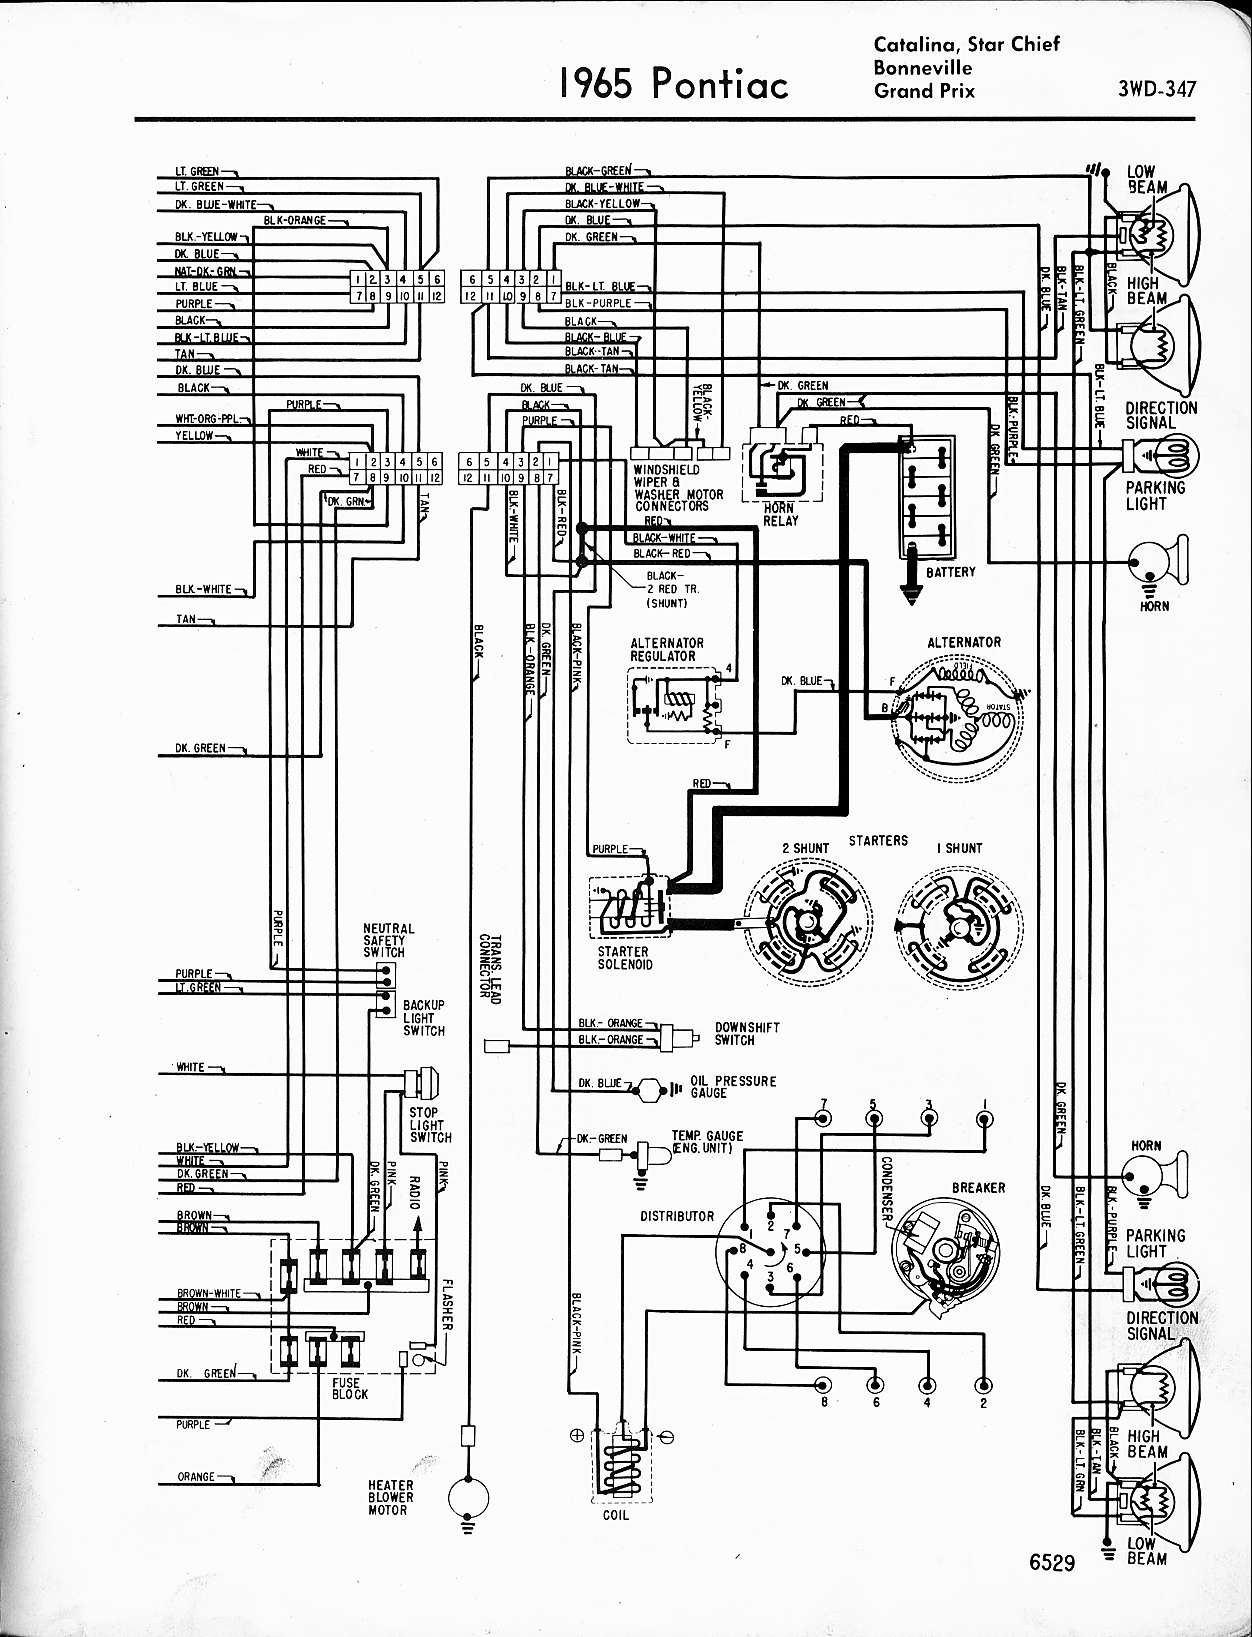 MWire5765 347 i am trying to reconnect the radio in my restored 1964 pontiac 1964 GTO Dome Light Wiring Diagram at gsmx.co